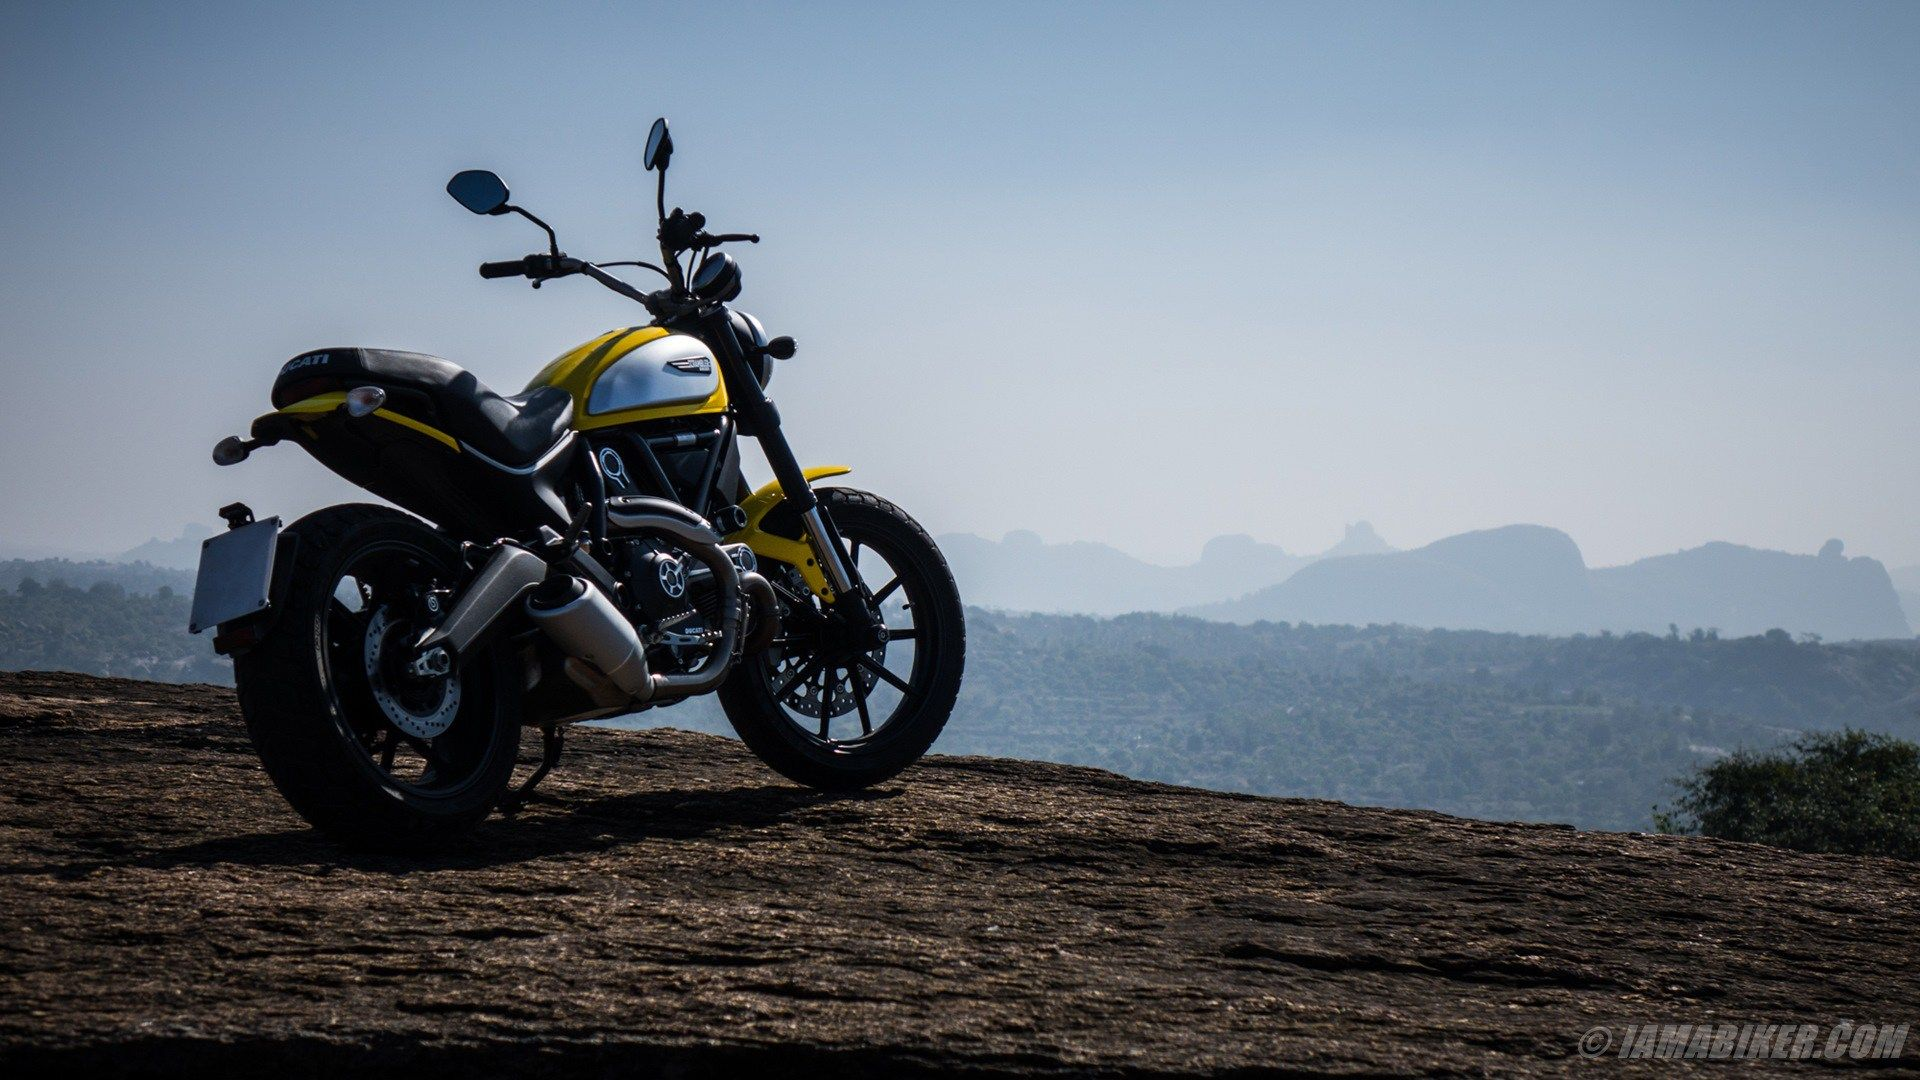 Ducati Scrambler HD wallpapers | IAMABIKER motorcycle ...